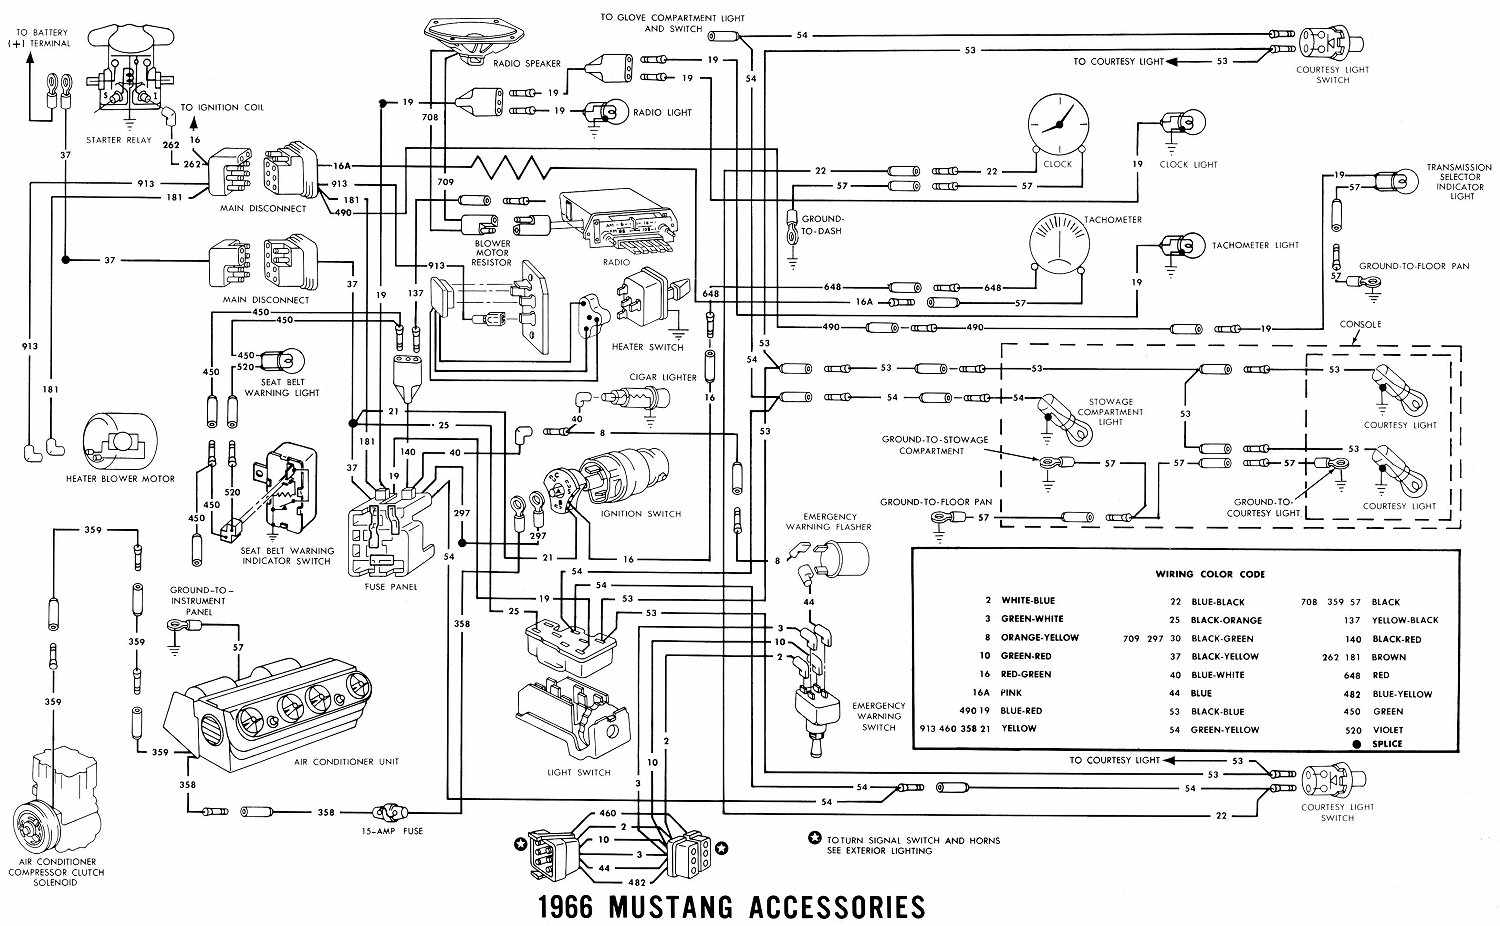 1970 plymouth engine wiring diagram